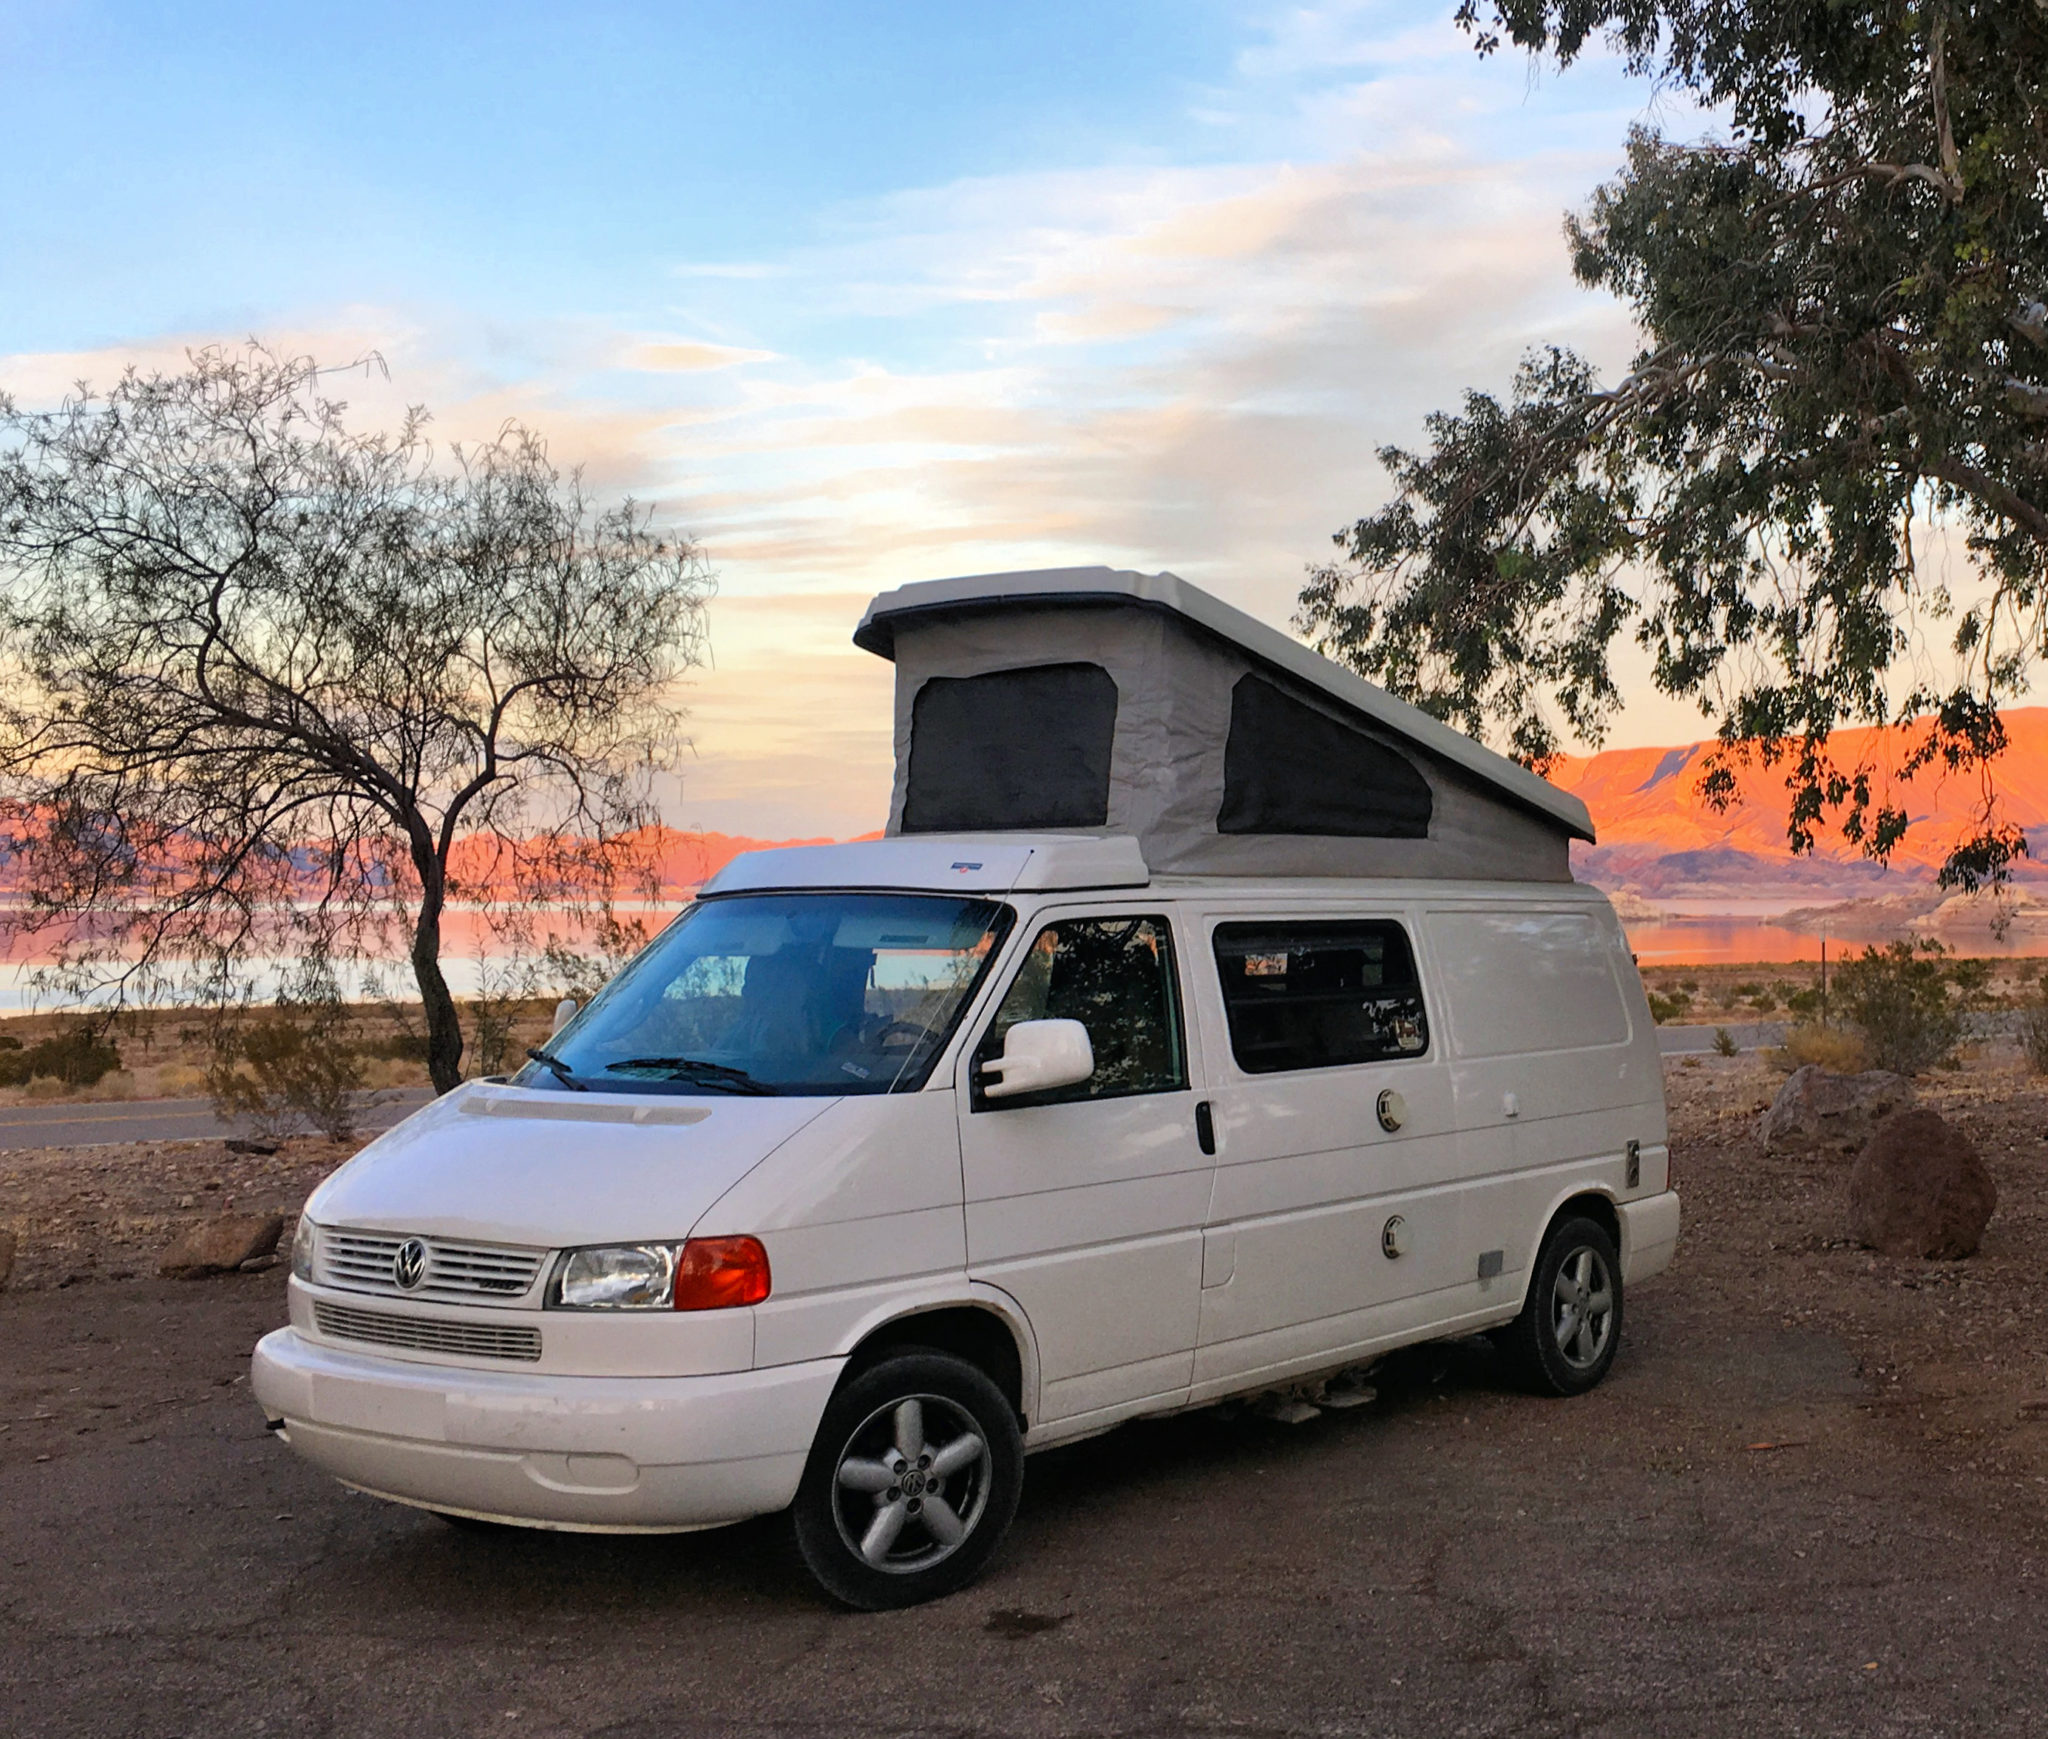 Best Campervan Rental Companies USA